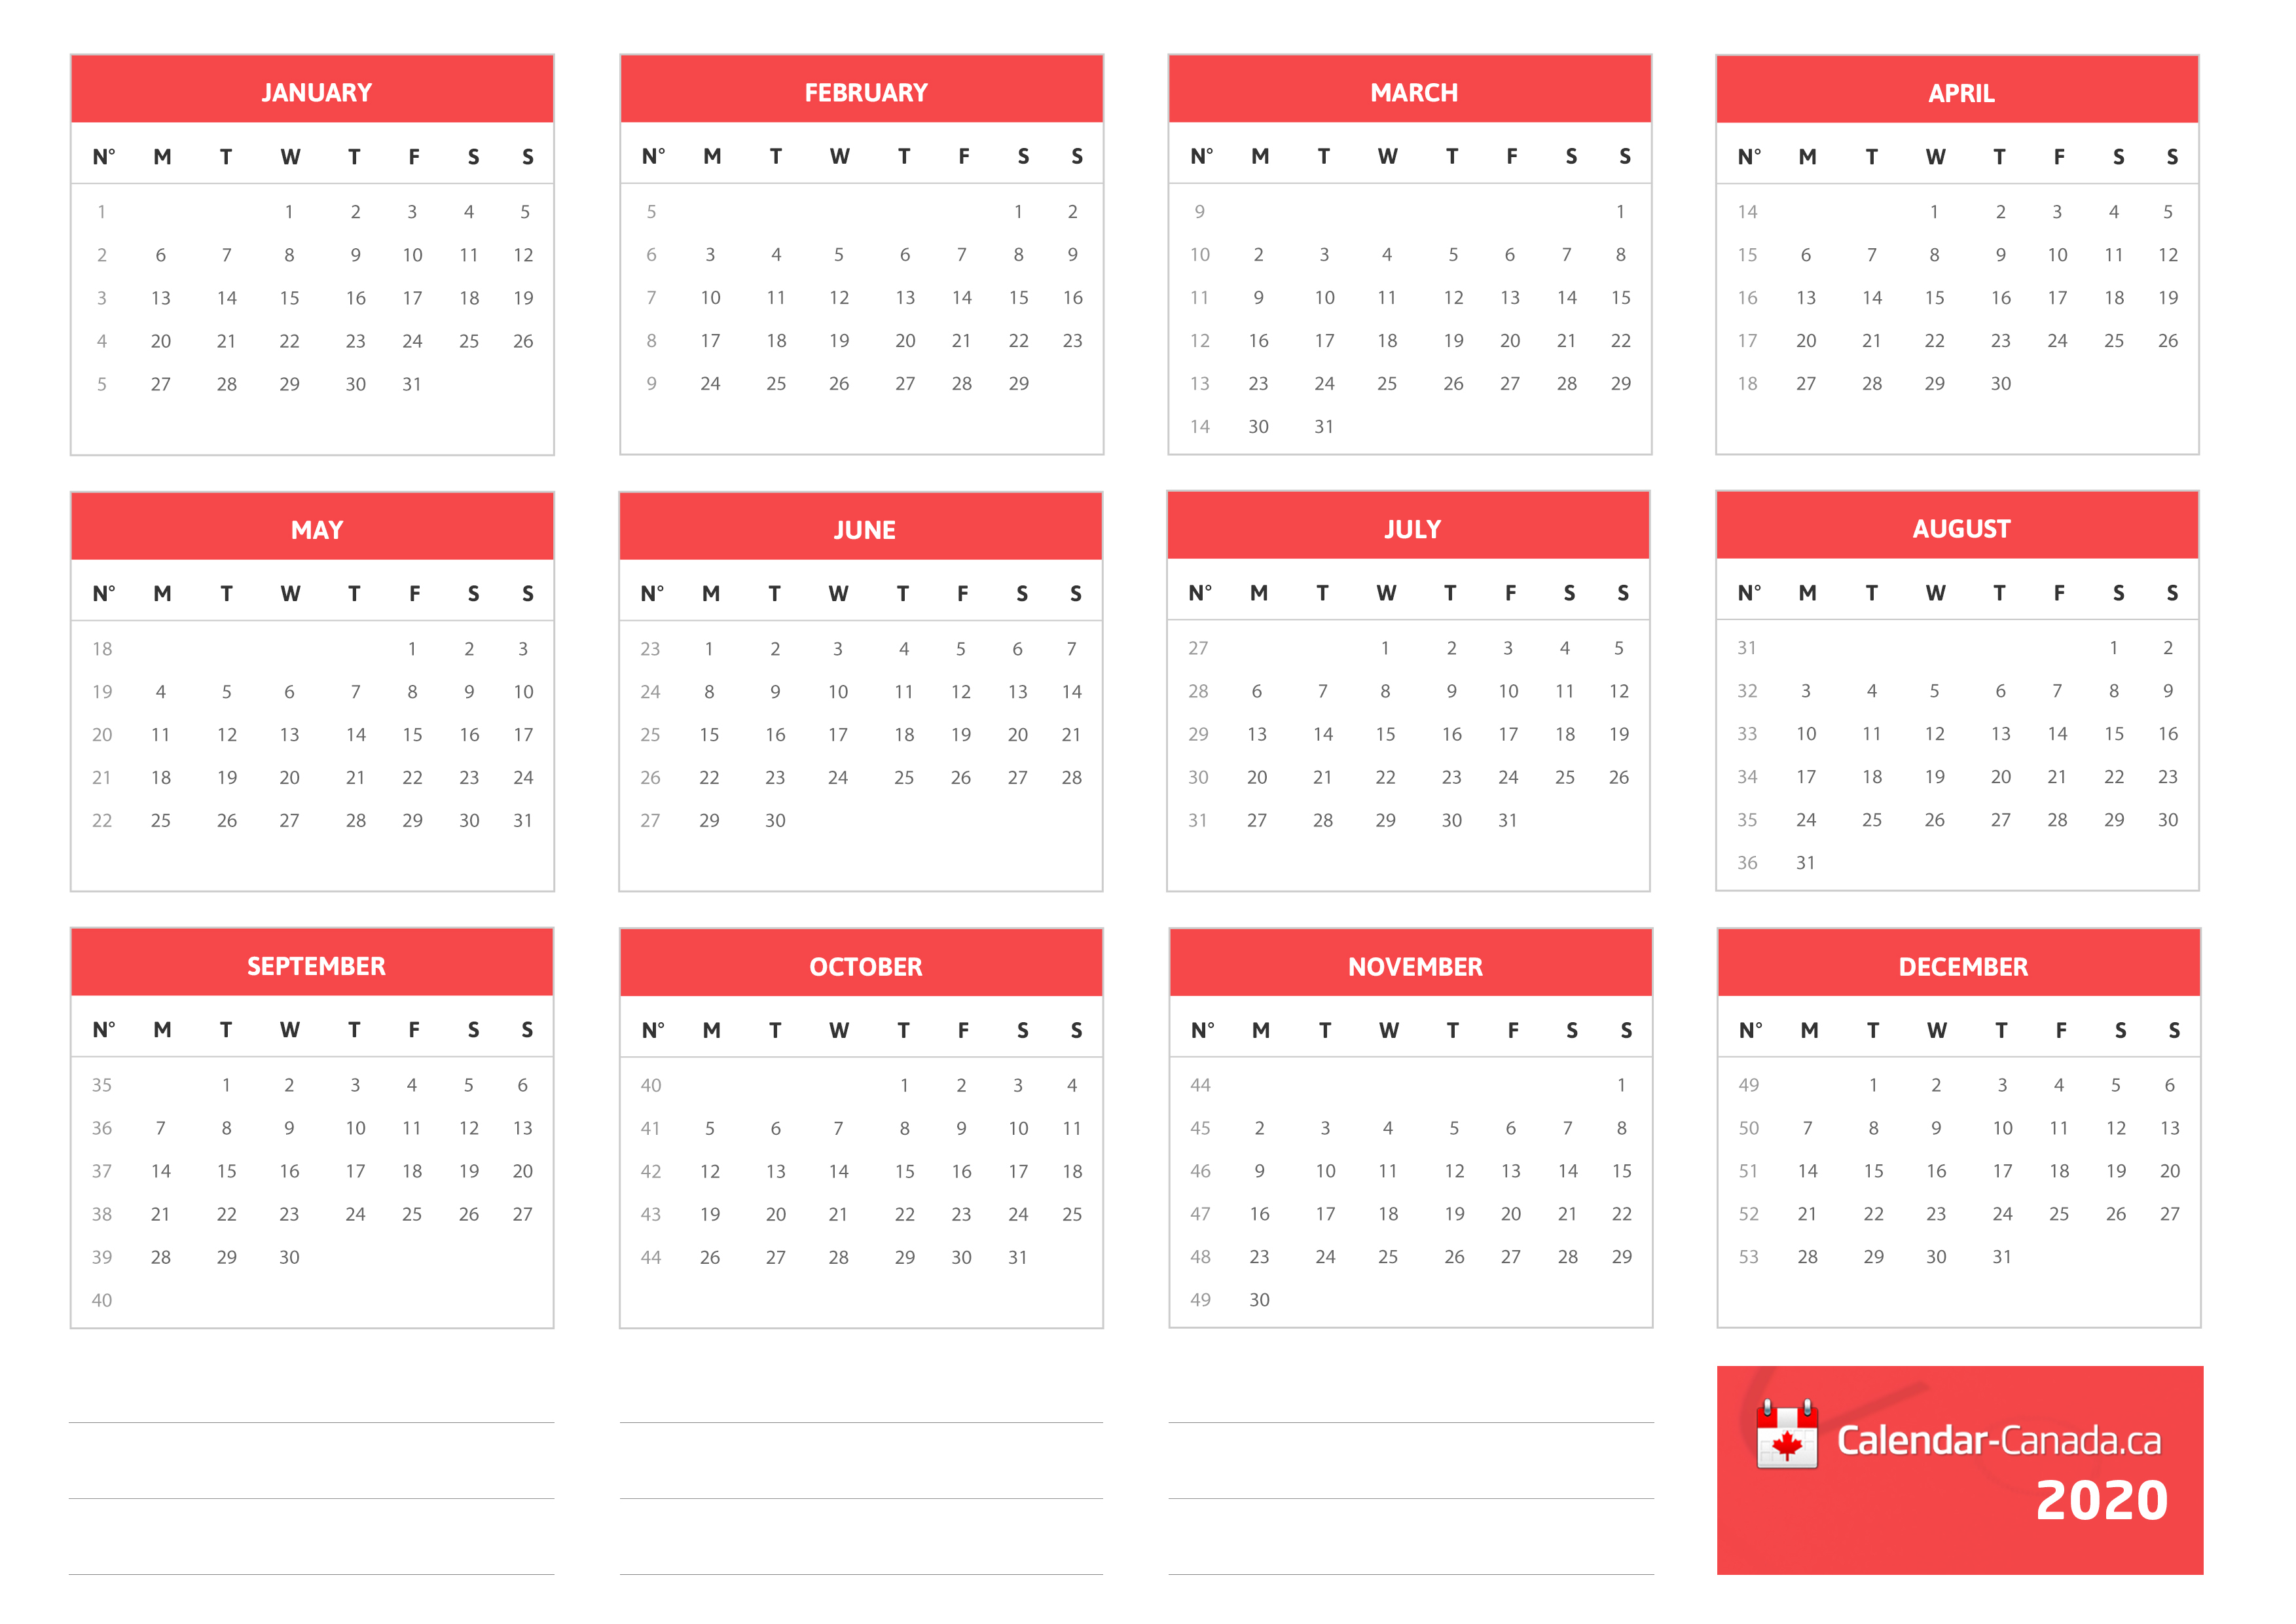 2019 Shopping Calendar - Important Shopping Dates In The